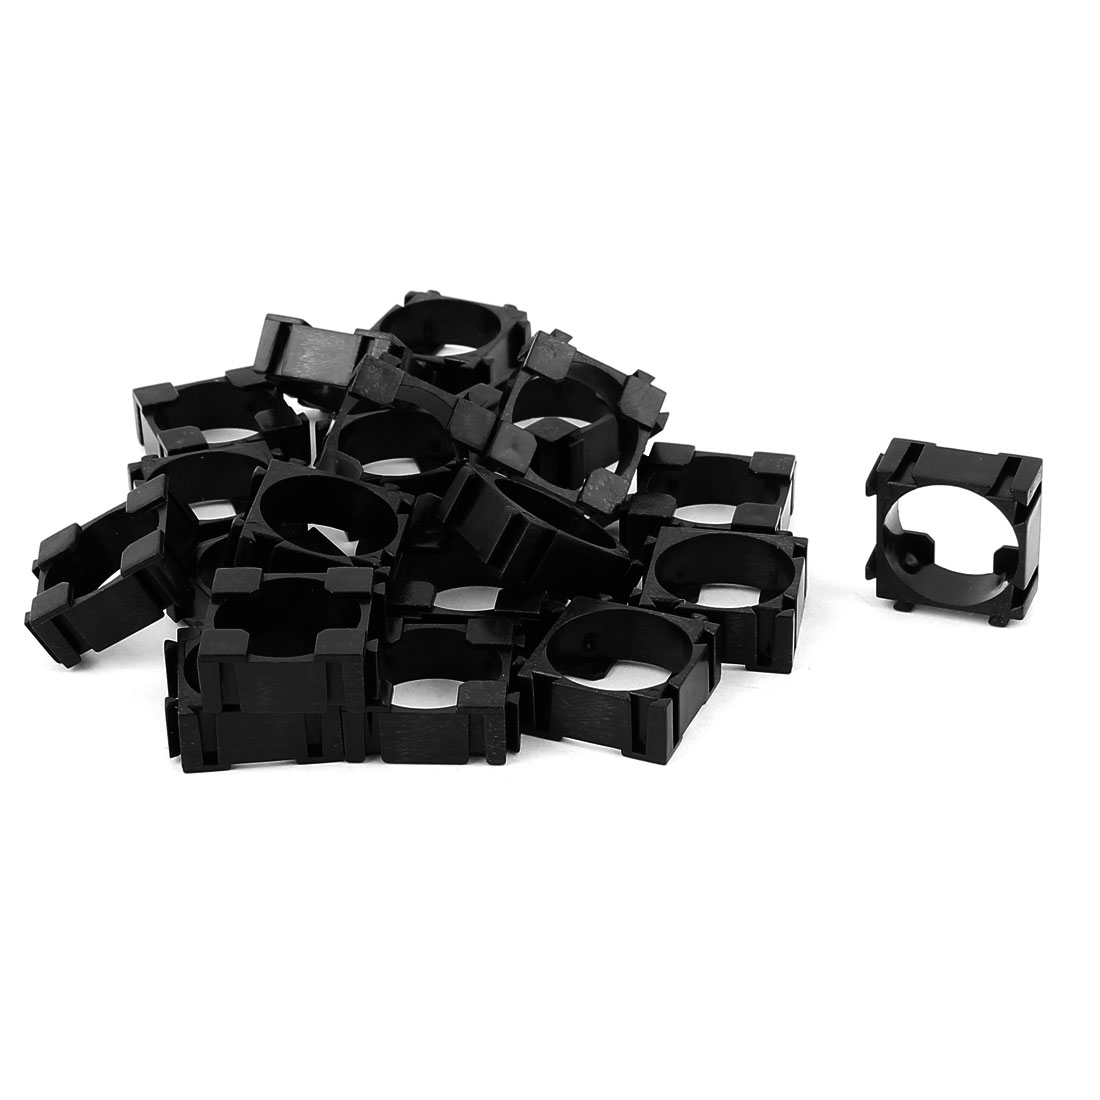 20 Pcs 18650 Lithium Ion Cell Battery Holder Bracket for DIY Battery Pack